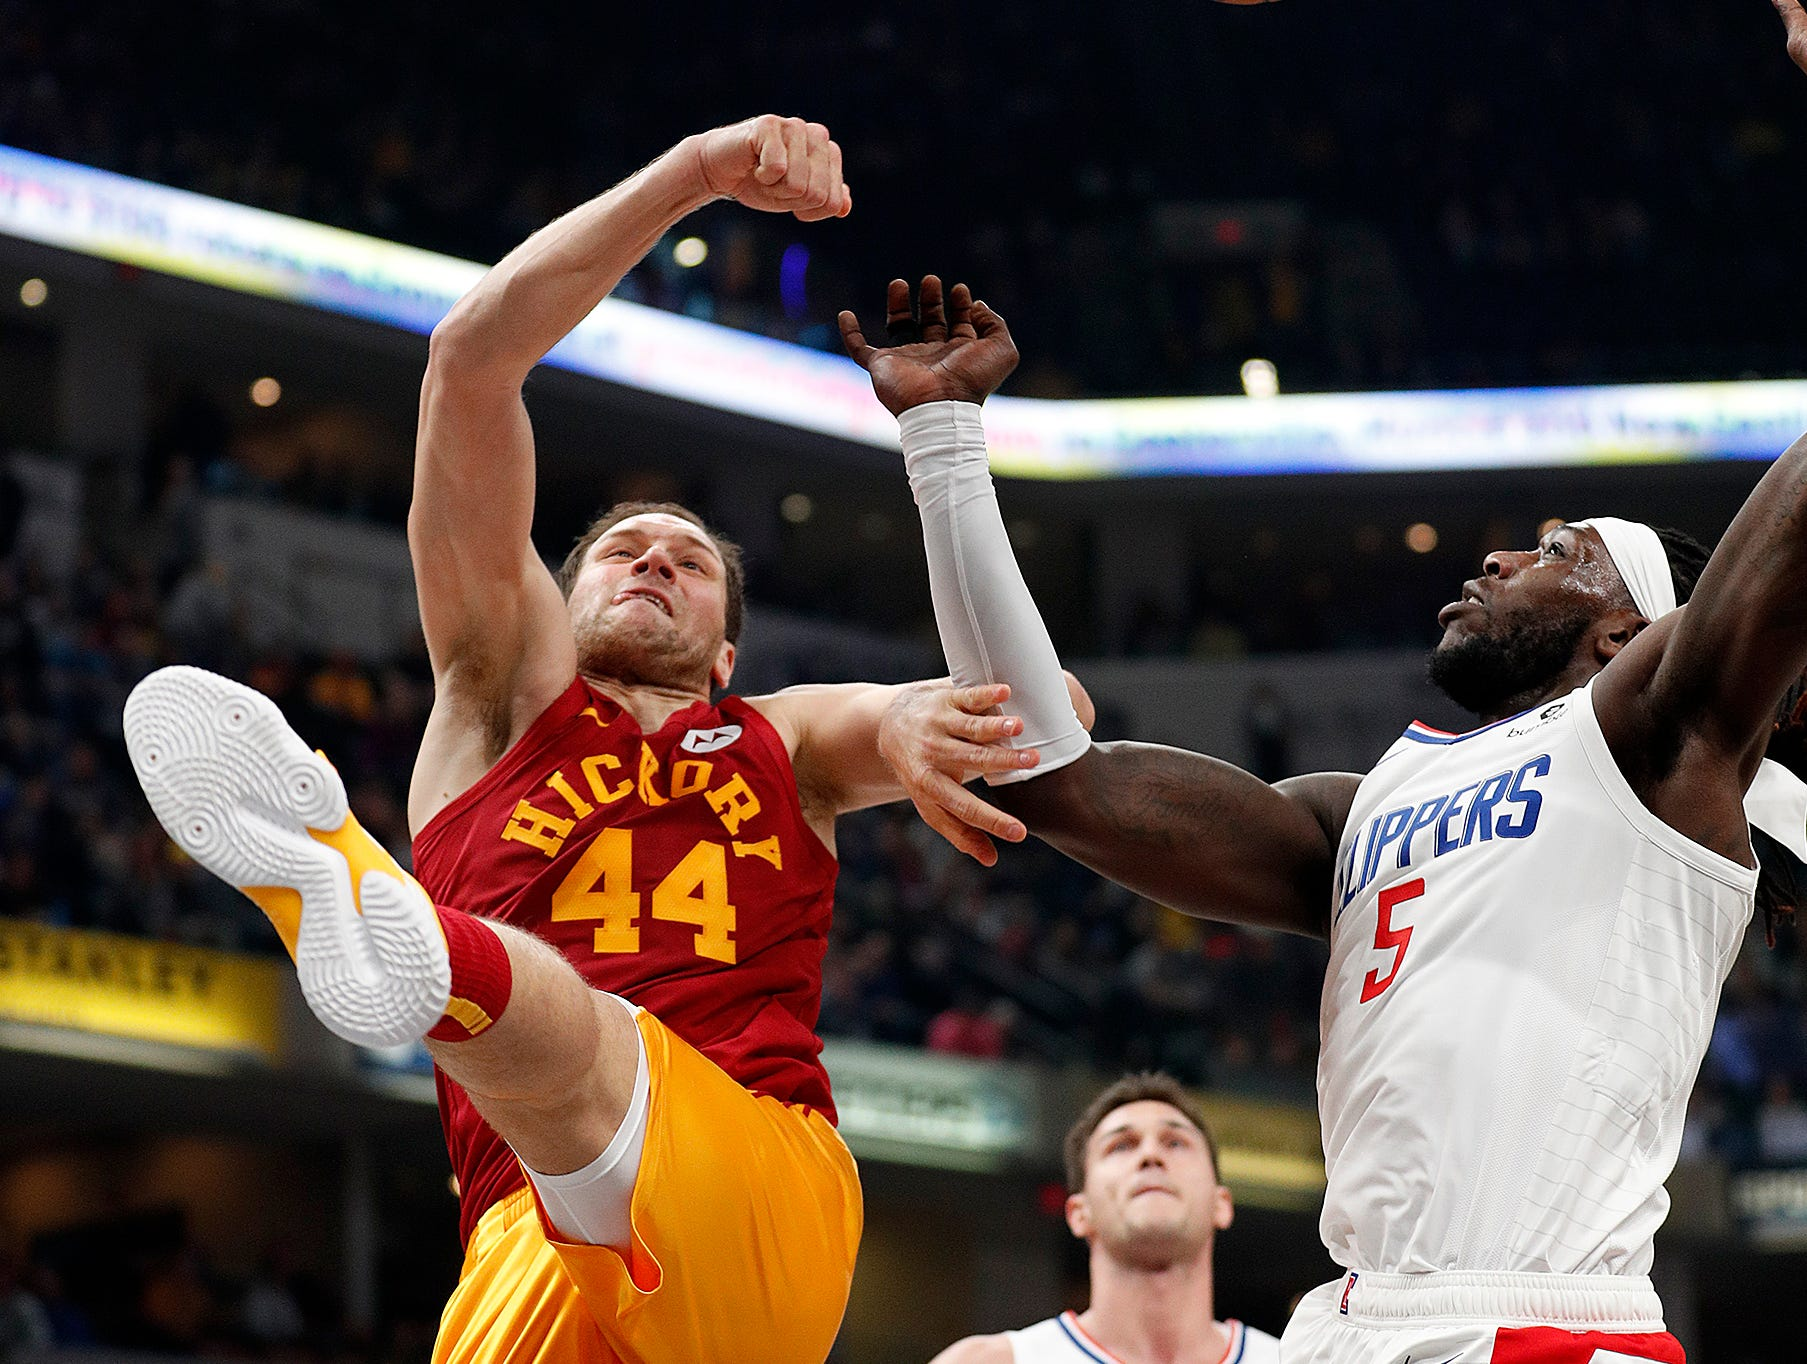 Indiana Pacers forward Bojan Bogdanovic (44) is fouled by LA Clippers forward Montrezl Harrell (5) in the first half of their game at Bankers Life Fieldhouse on Thursday, Feb. 7, 2019.